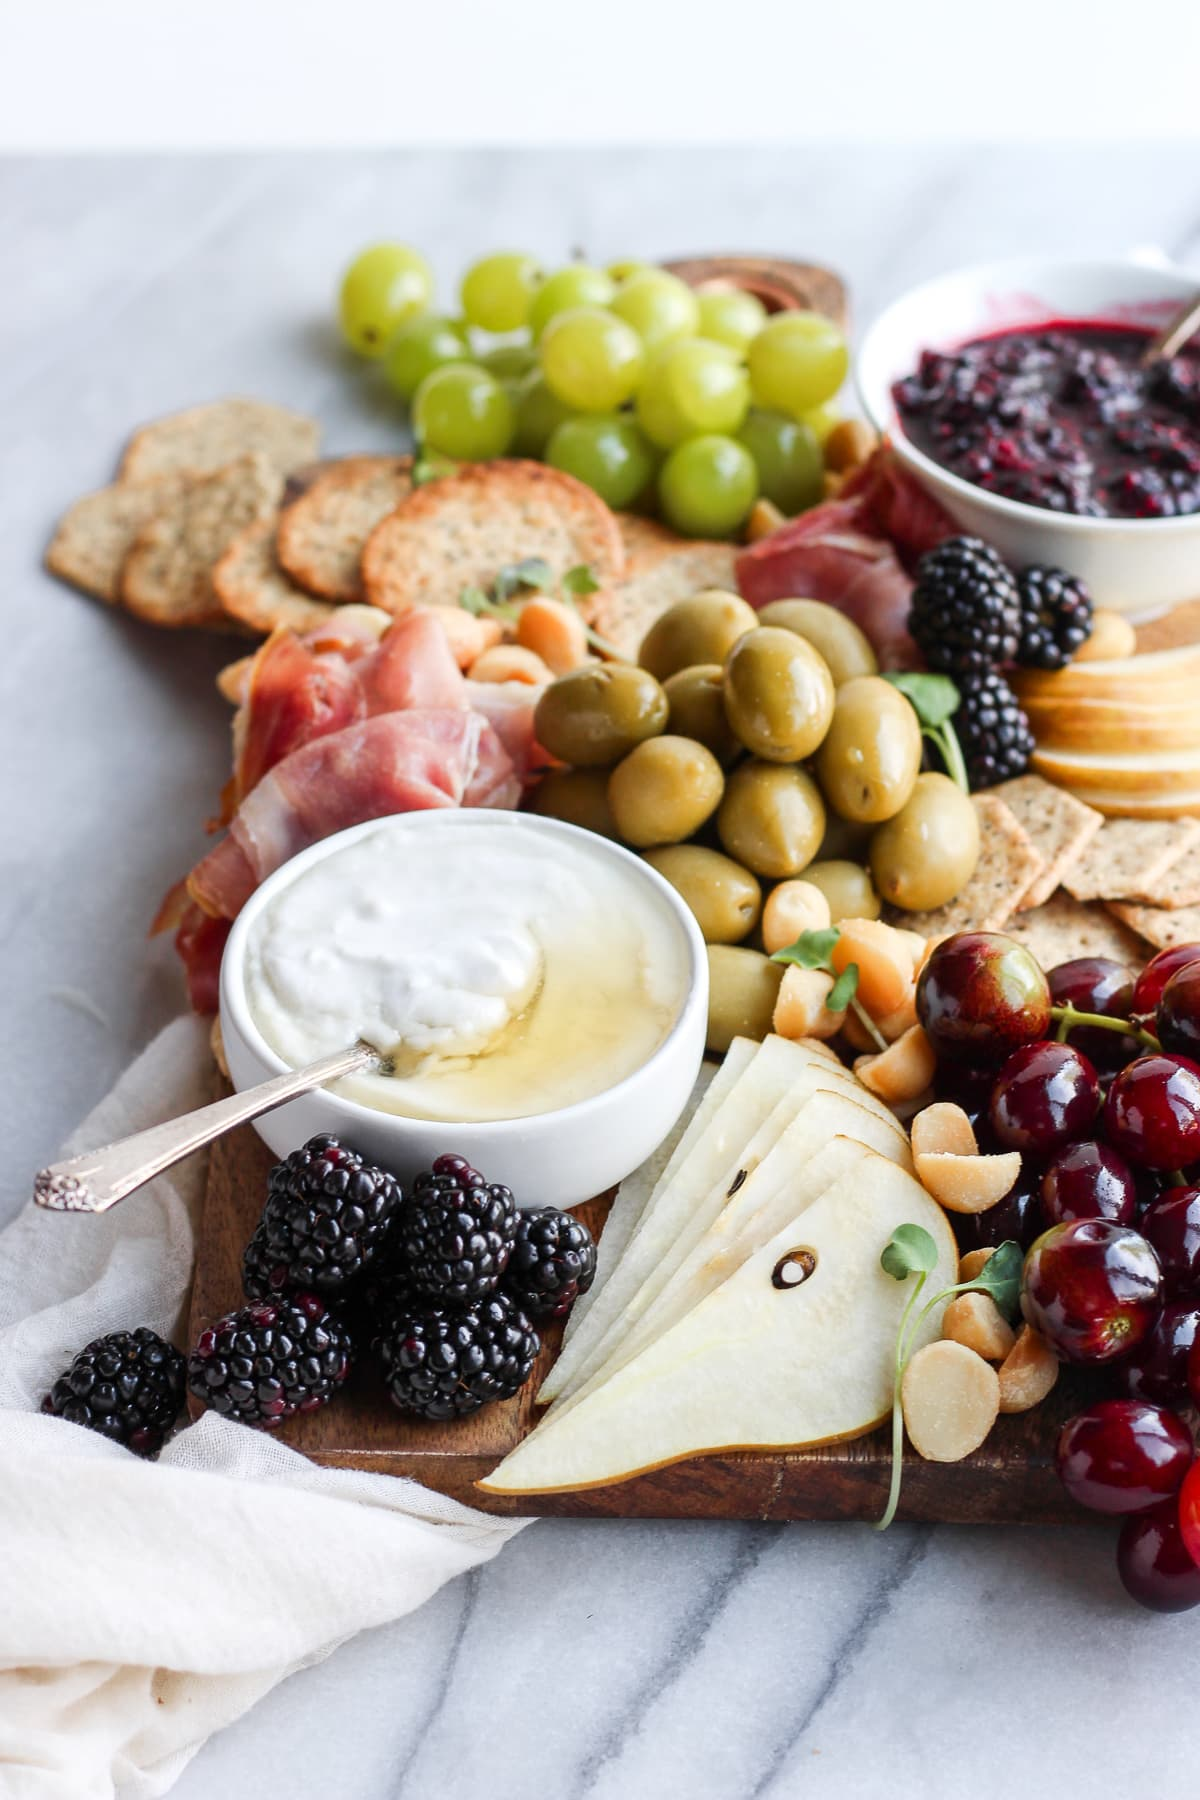 Healthy Grain-Free/Gluten-Free Charcuterie Board - a light and delicious appetizer or light dinner! #glutenfree #cheeseboard #charcuterie #grainfree